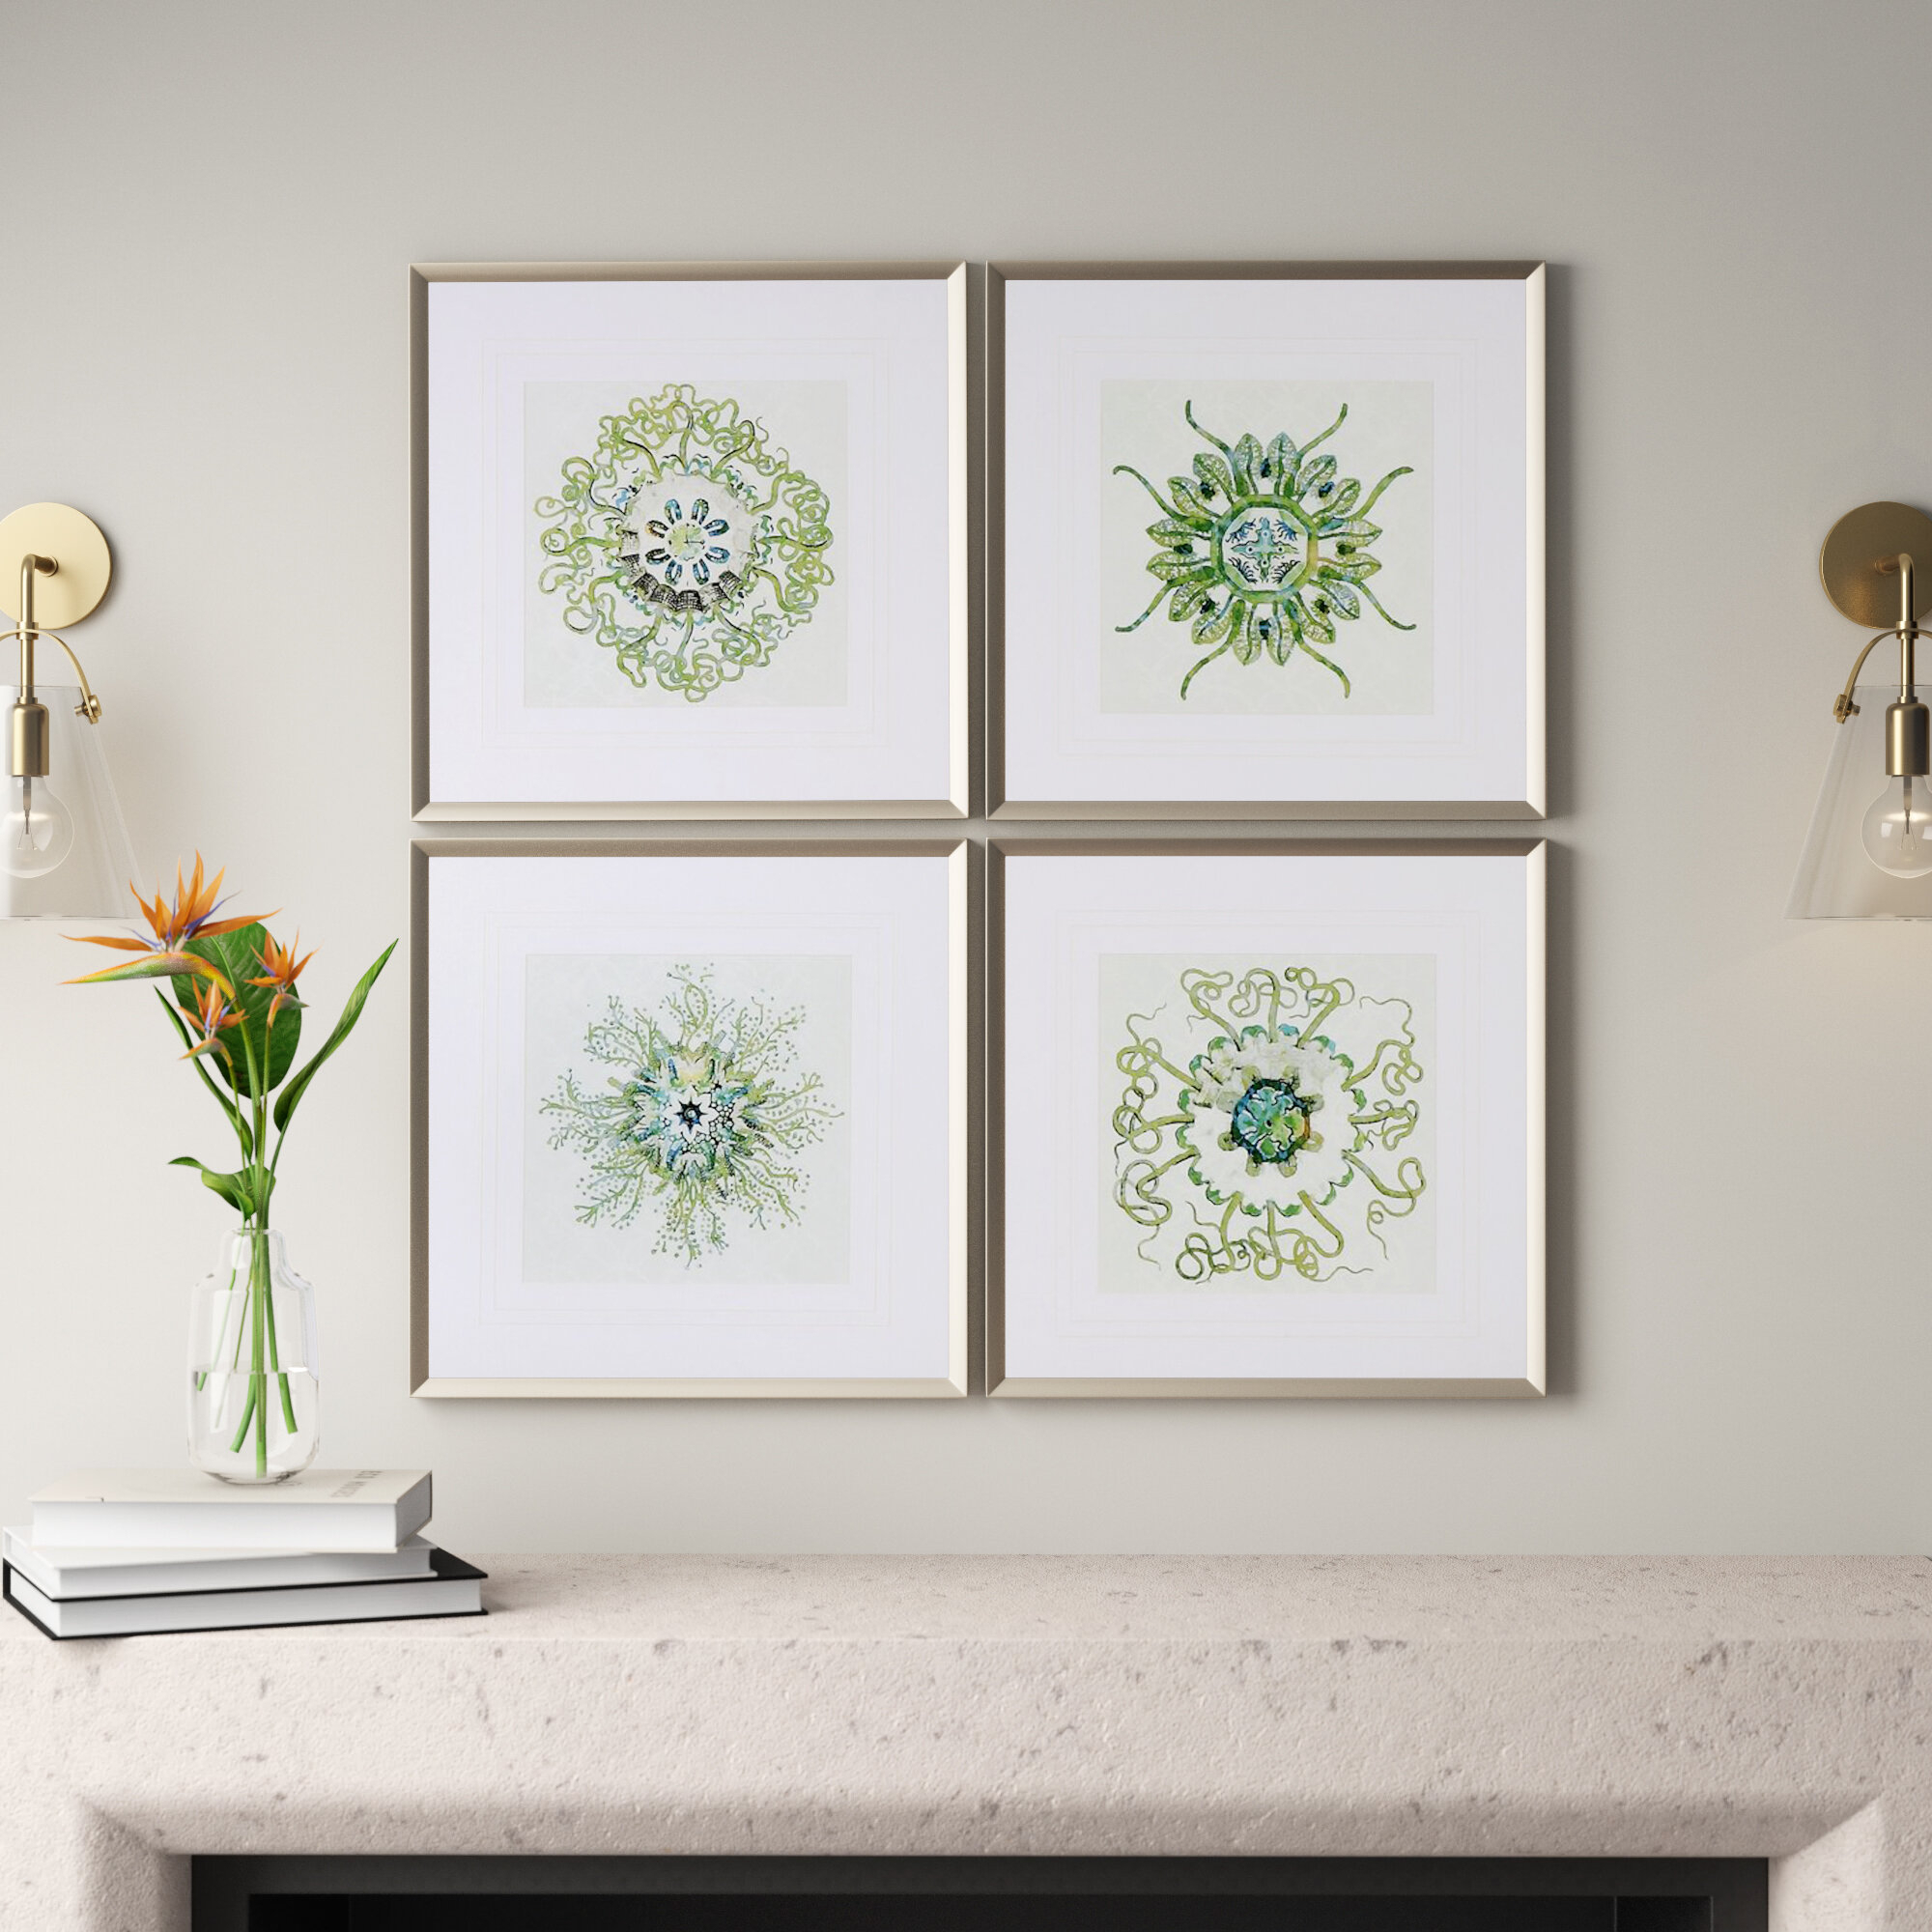 Bohemian Wall Decor | Joss & Main in 3 Piece Ceramic Flowers Wall Decor Sets (Image 15 of 30)